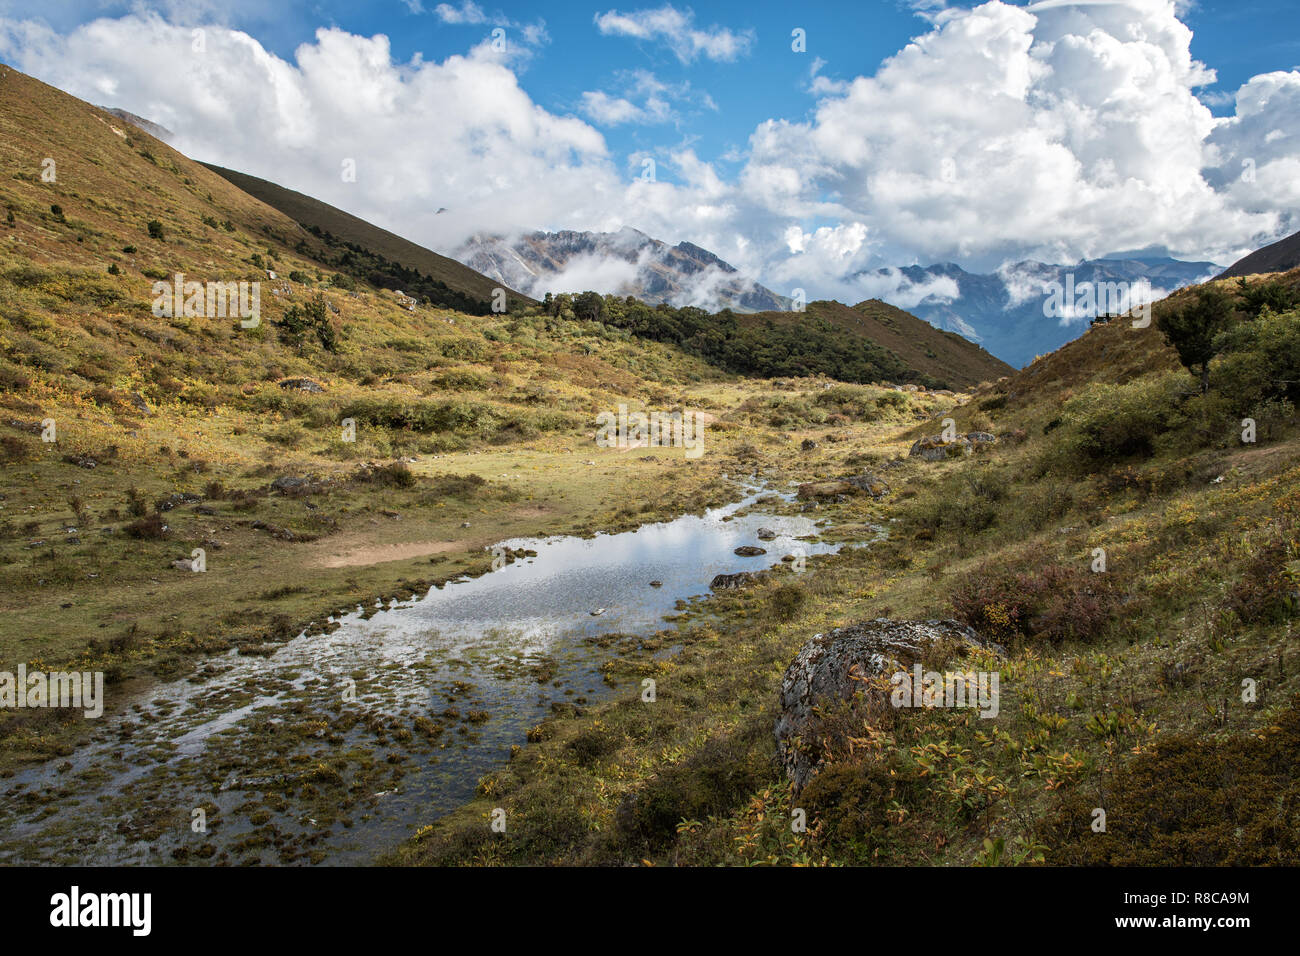 Pond and mountains at Robluthang, Gasa District, Snowman Trek, Bhutan - Stock Image